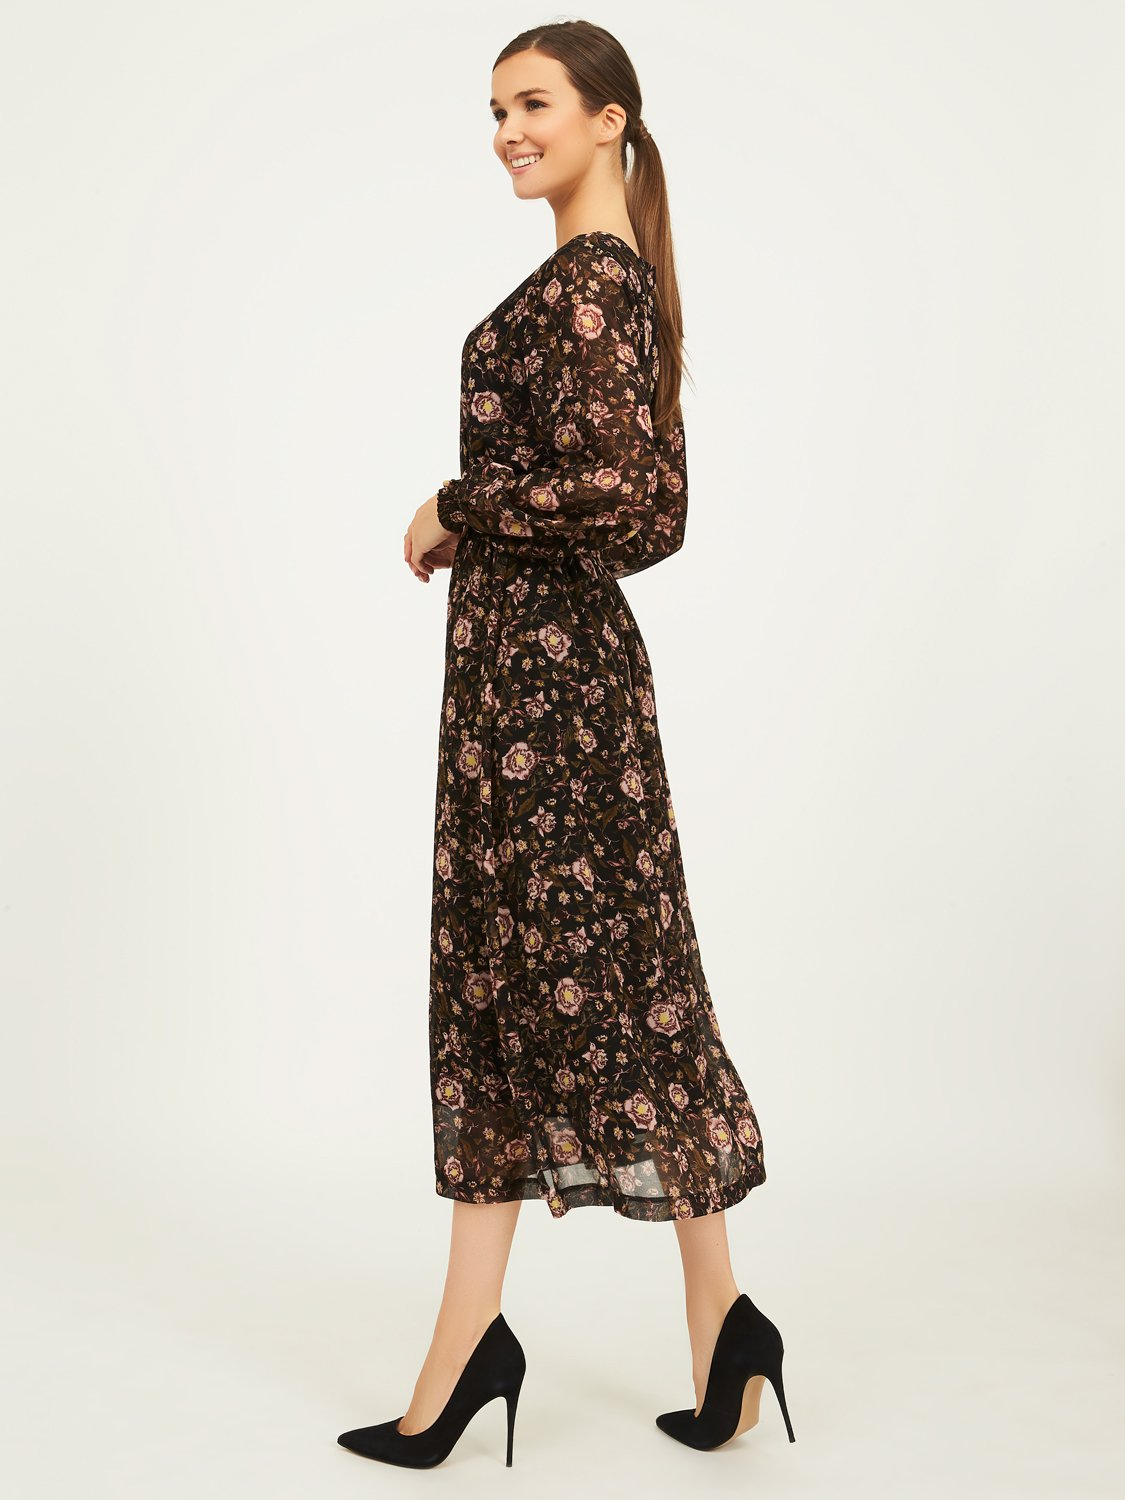 Copy of Floral Boat Neck Midi Dress